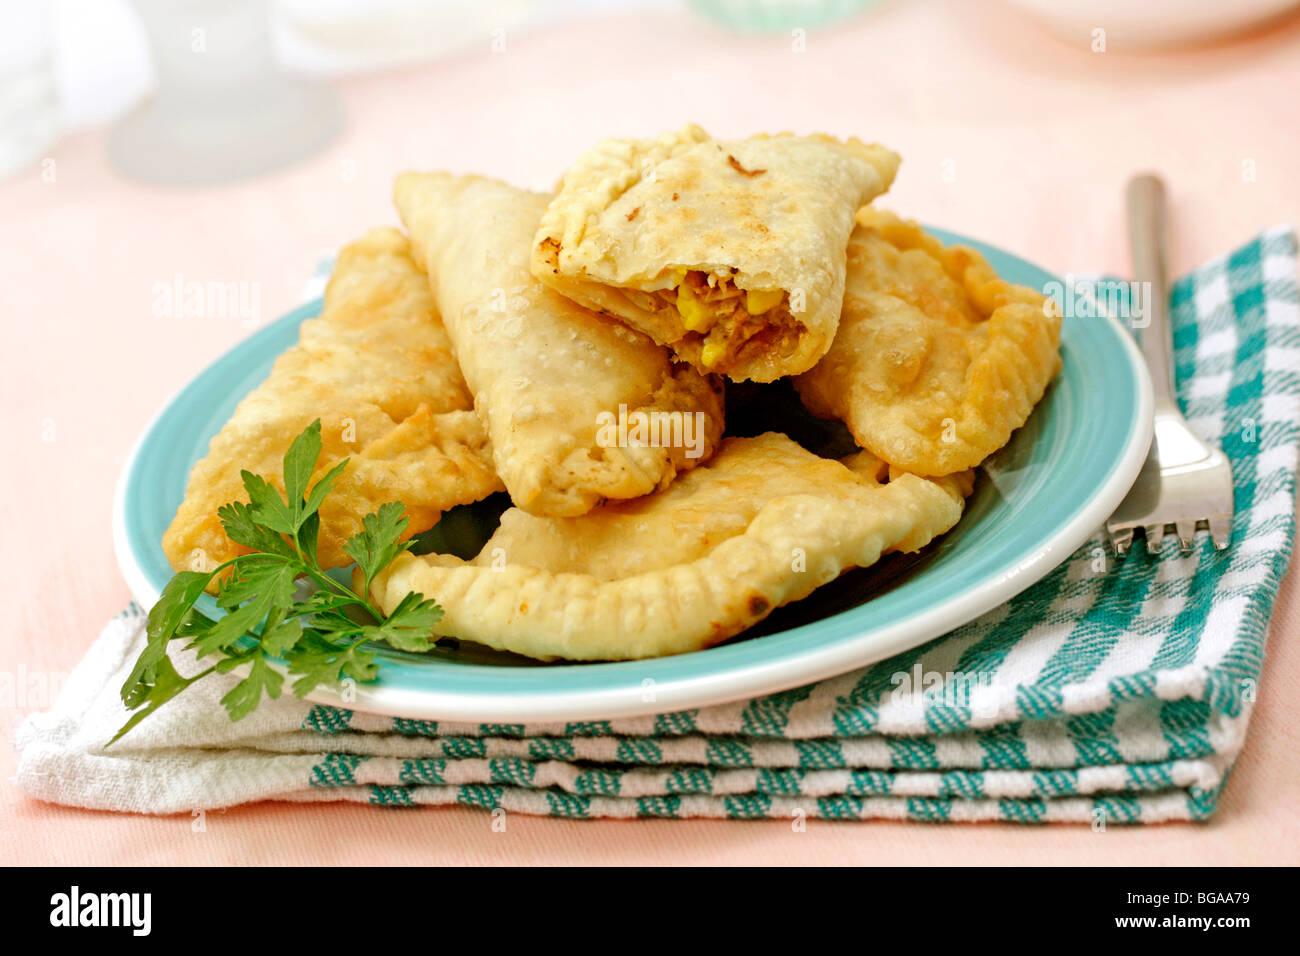 Tuna turnovers. Recipe available. - Stock Image